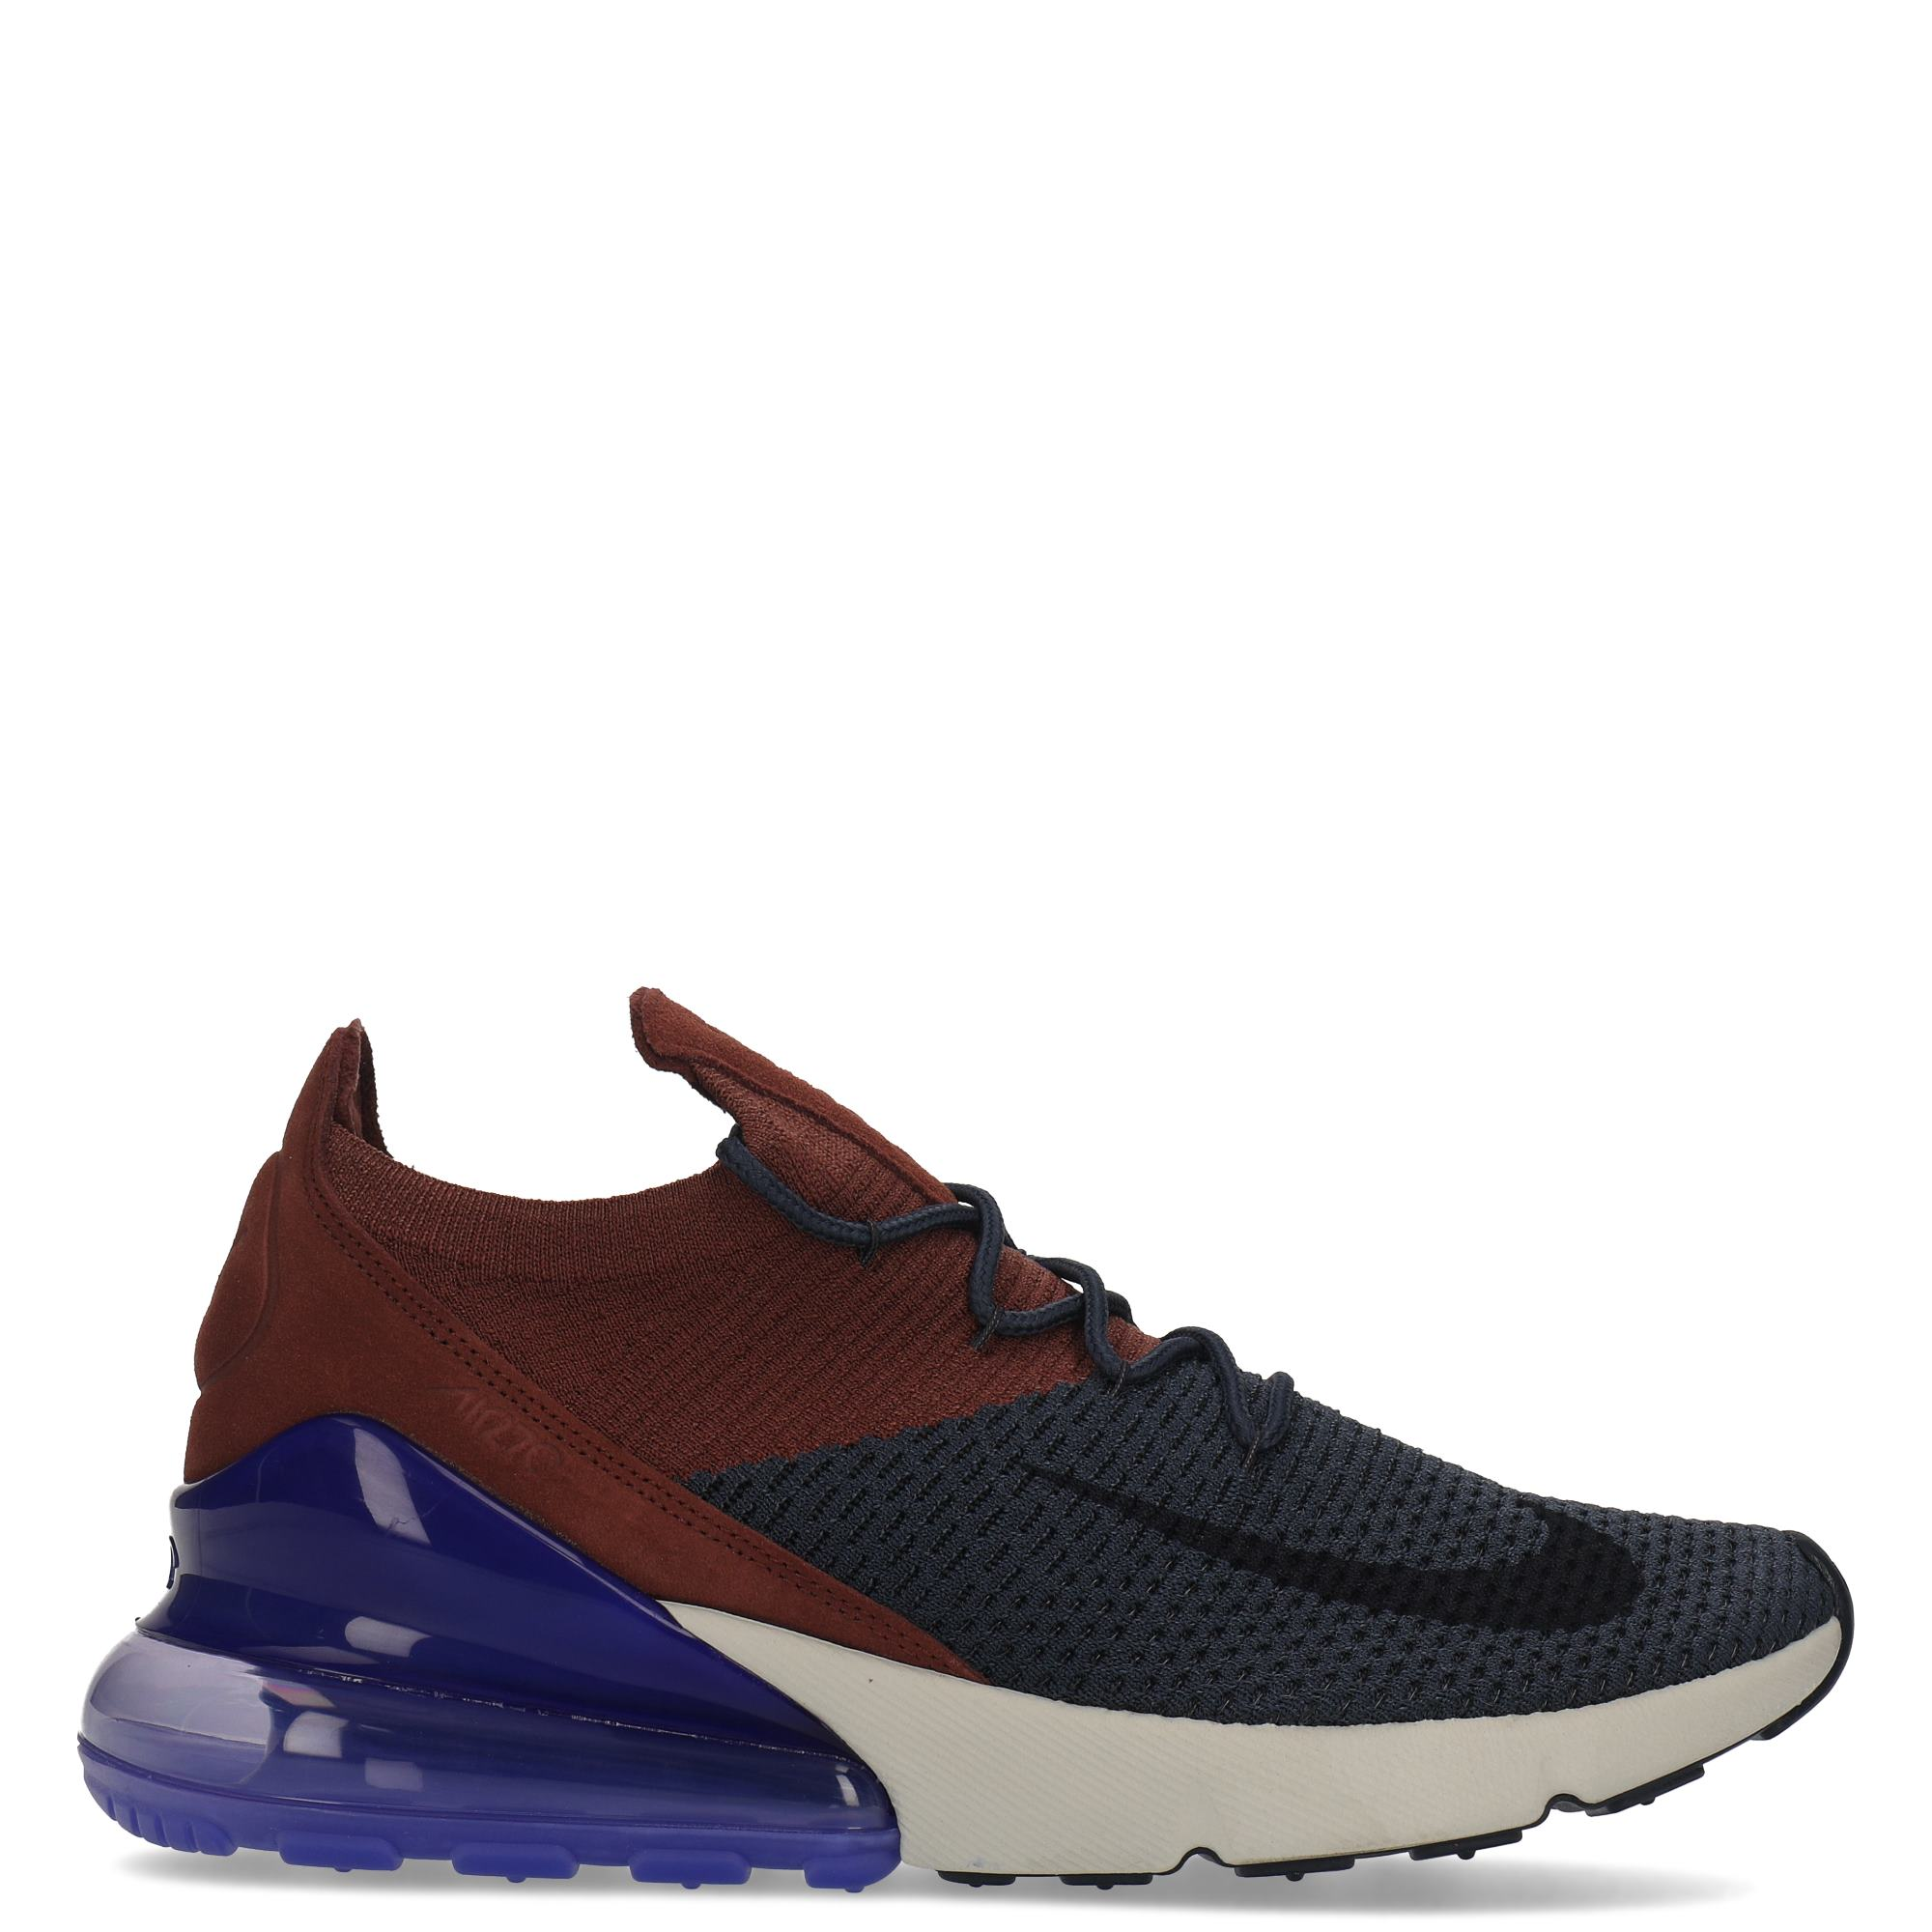 9227f9648ade Nike AIR MAX 270 FLYKNIT AO1023-402 - the Sneakermeister – Online sneaker  store